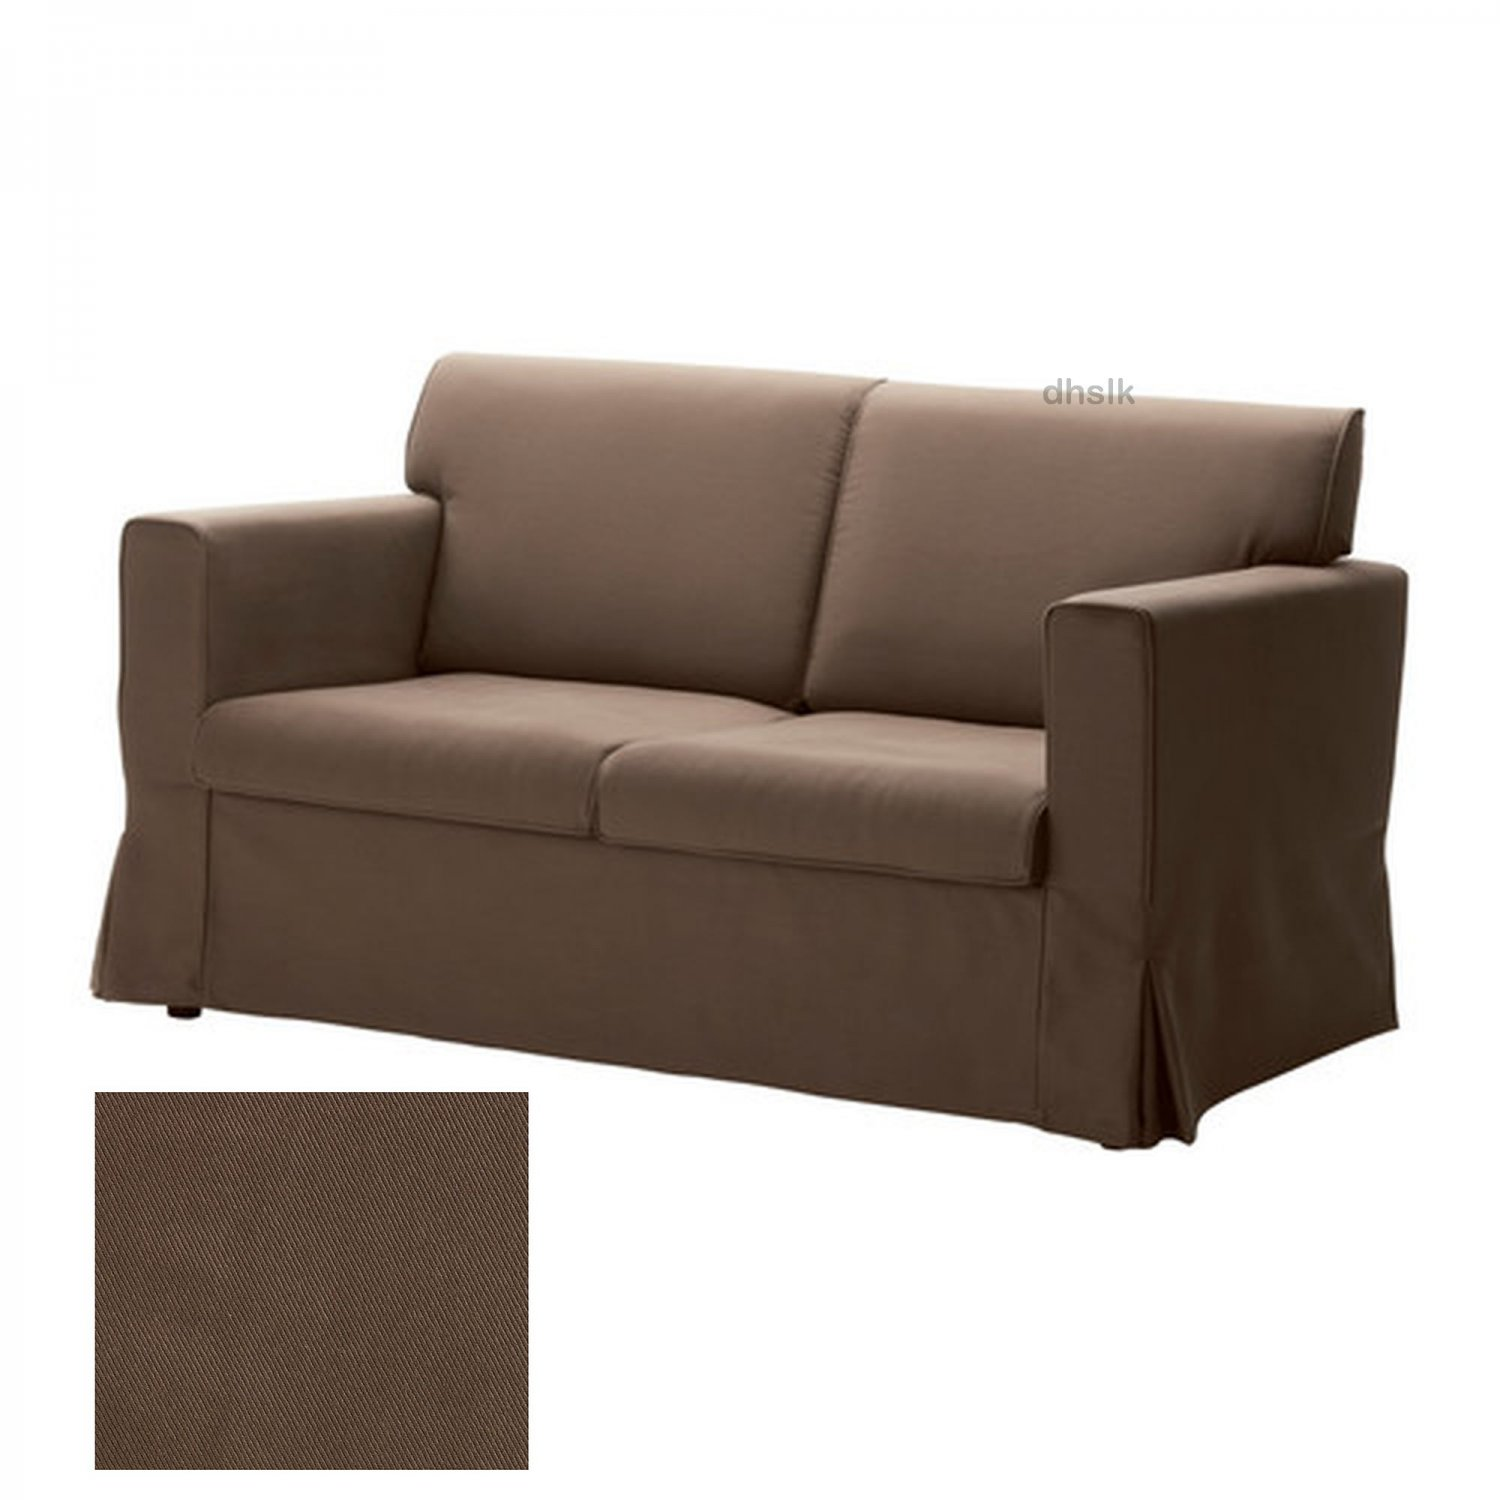 Ikea sandby 2 seat sofa slipcover loveseat cover blekinge brown Couch and loveseat covers